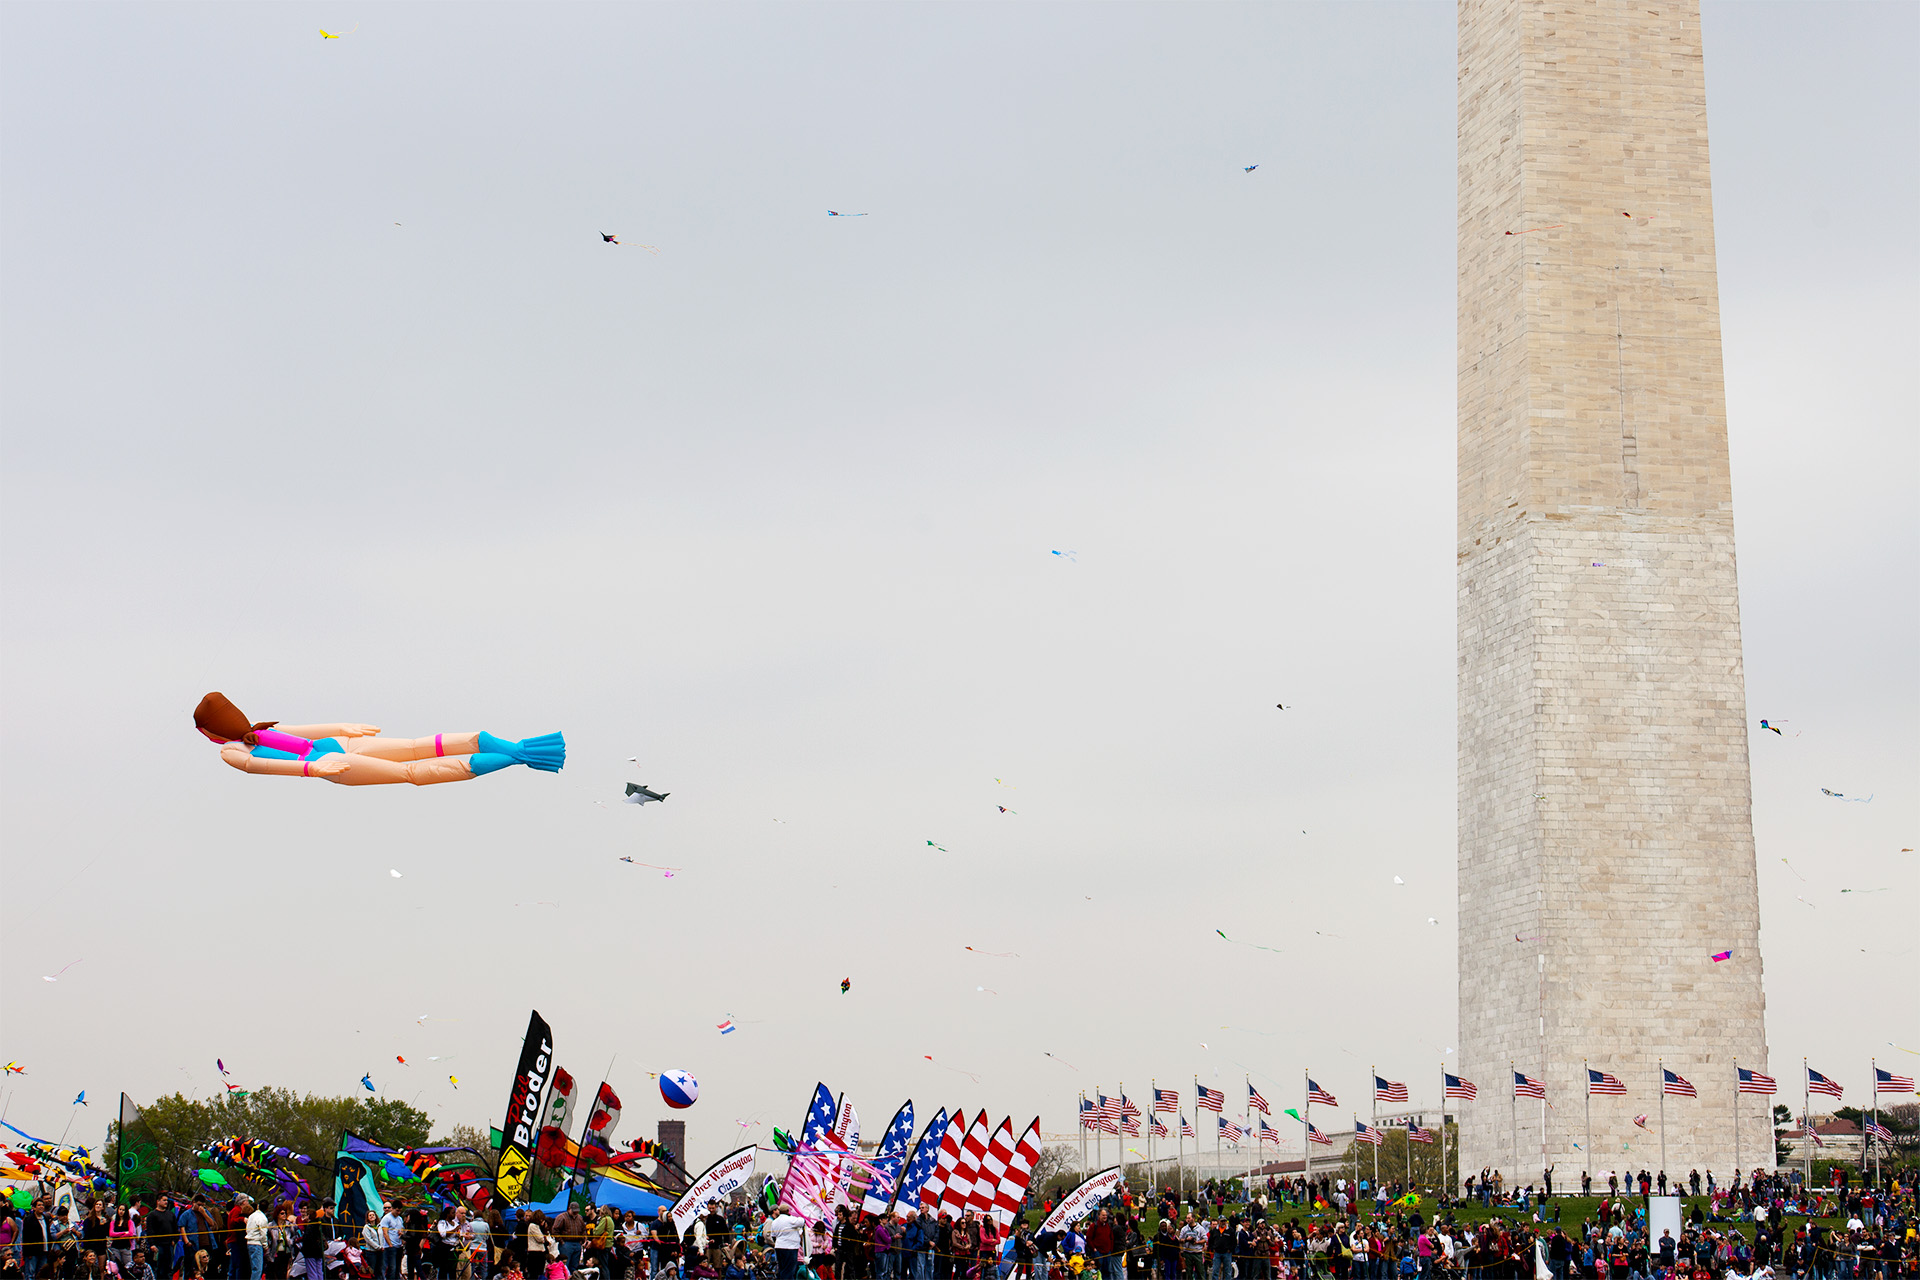 Kite Festival, Washington Monument.